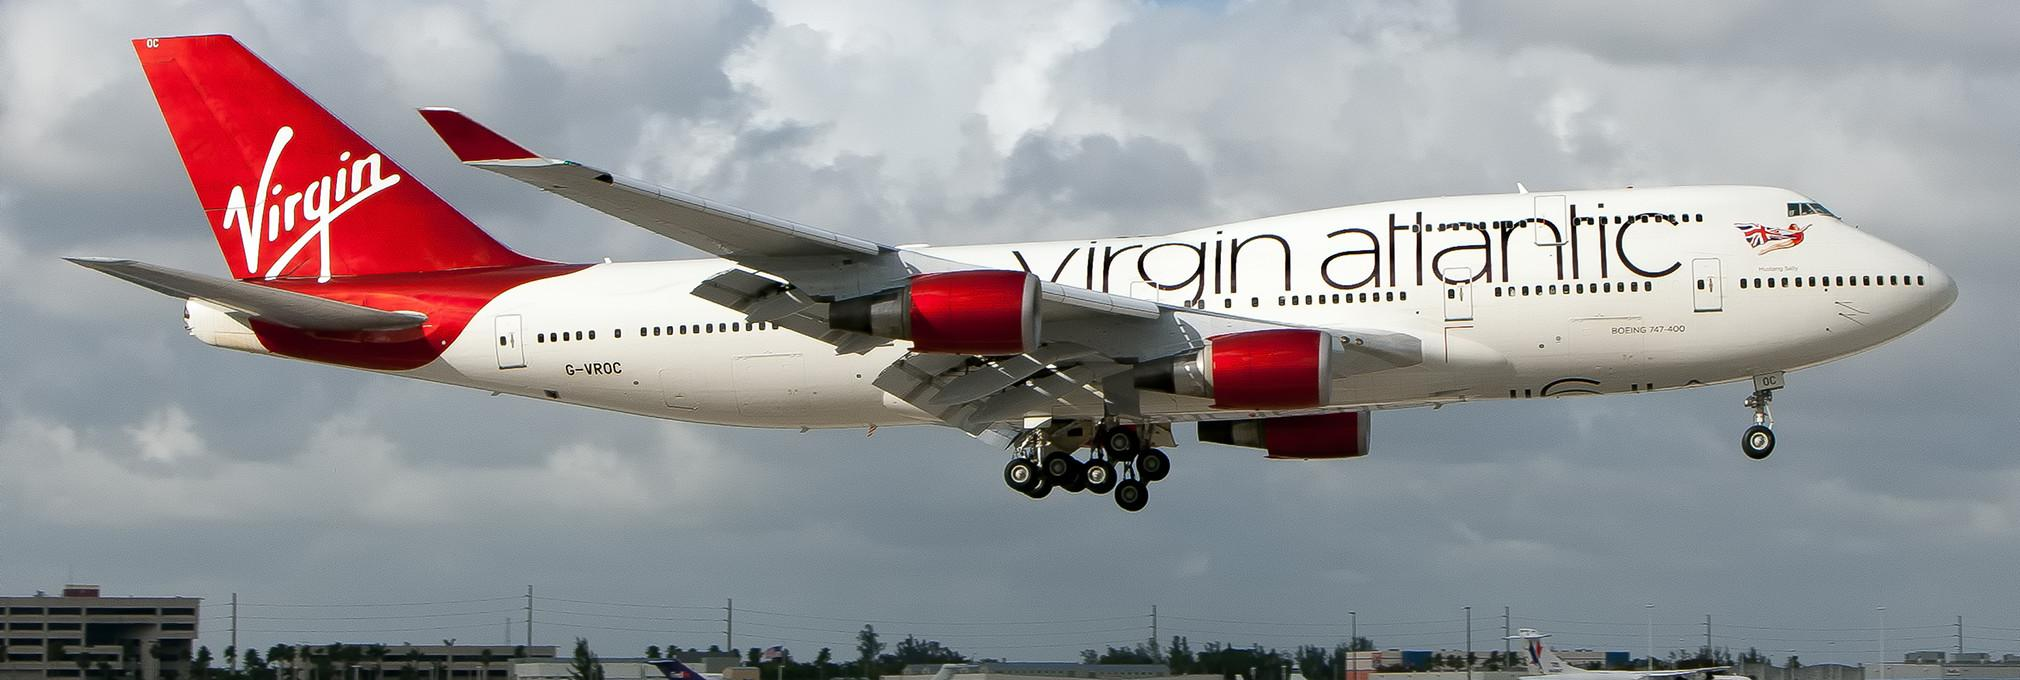 economical factors o virgin atlantic Virgin atlantic airways is axing more staff in hong news hong kong economy virgin atlantic sacks more hong kong staff amid questions about its future in.